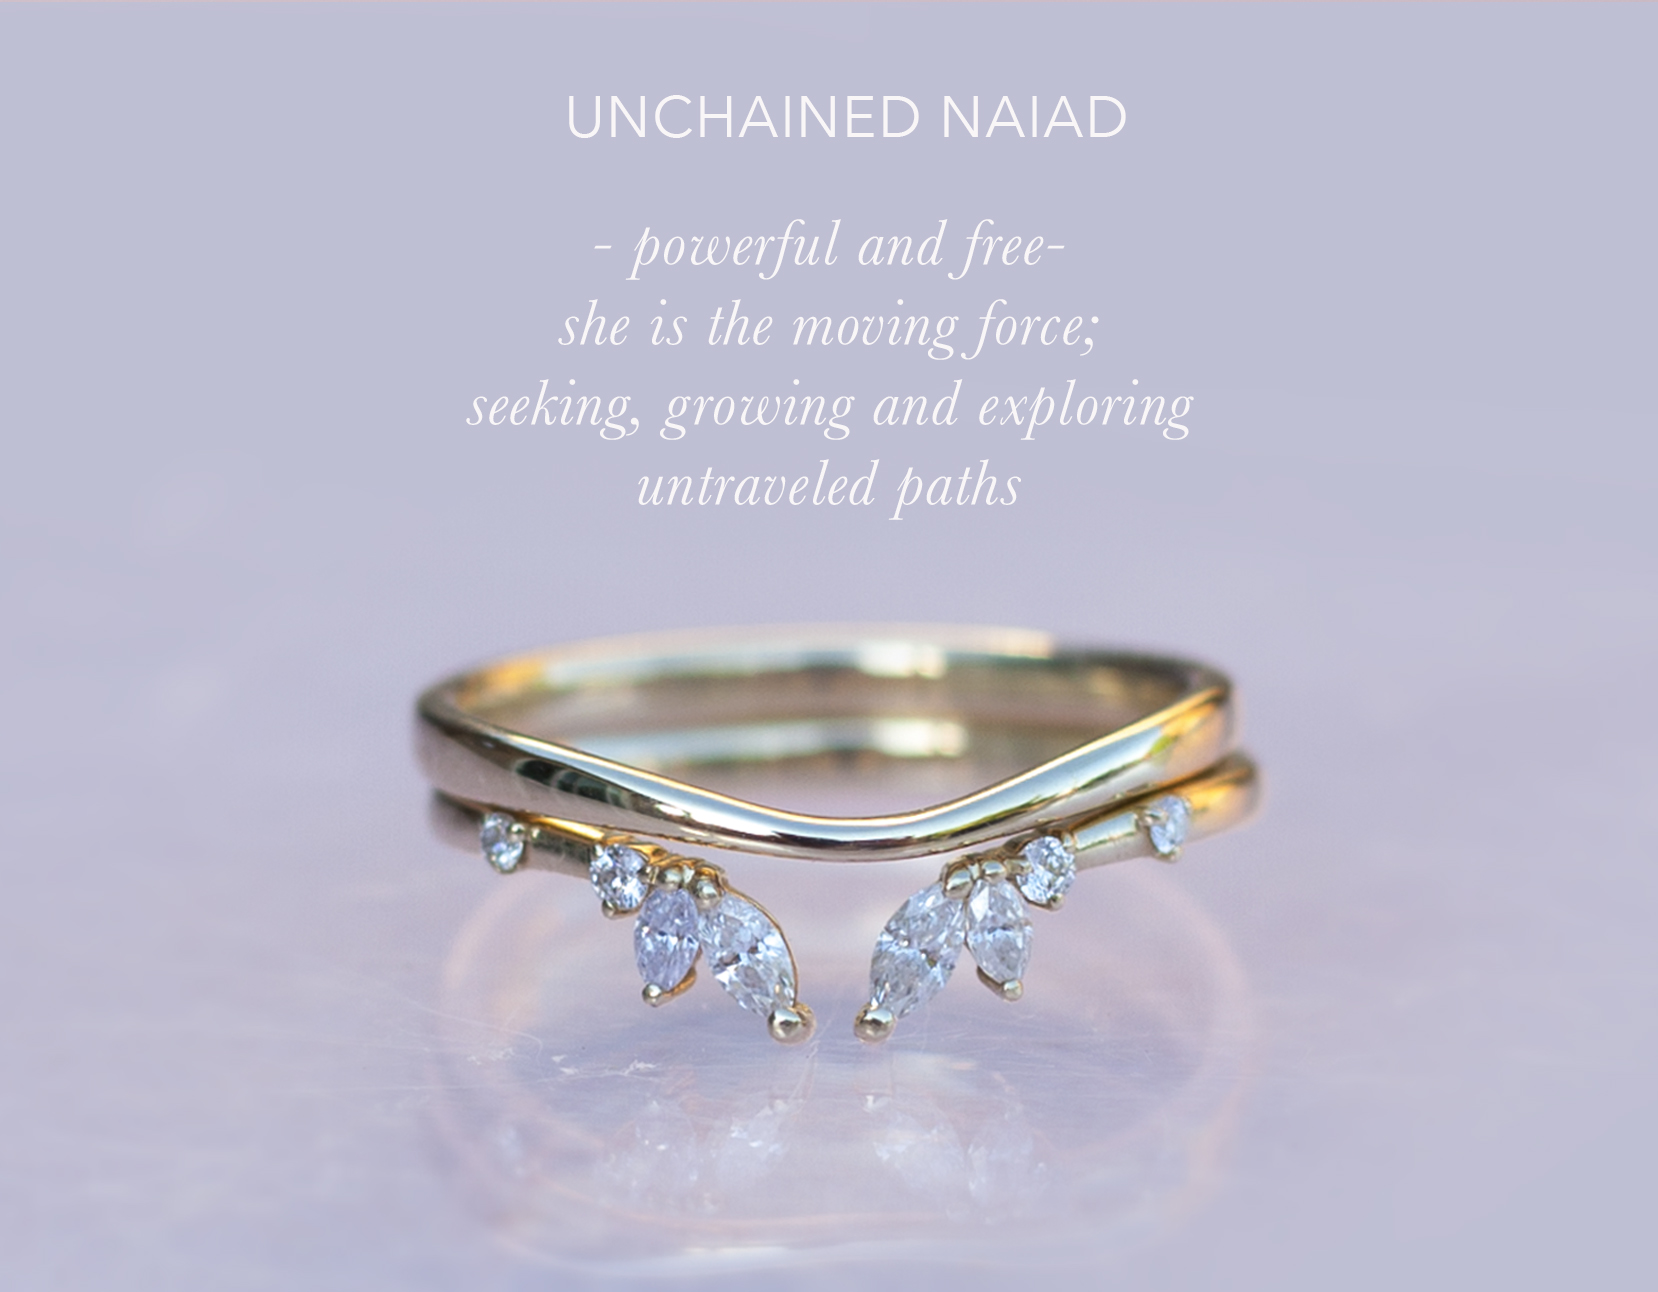 Ethical wedding band  using ethical gold and diamonds.